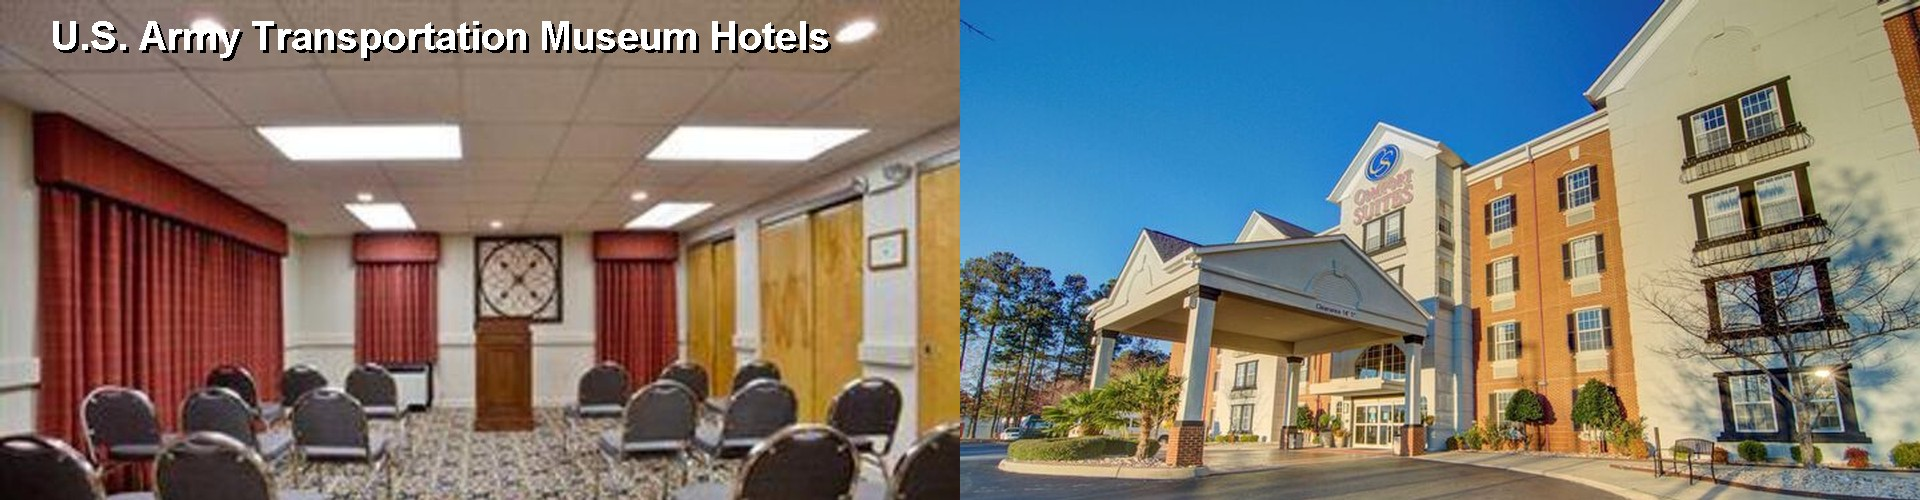 5 Best Hotels near U.S. Army Transportation Museum